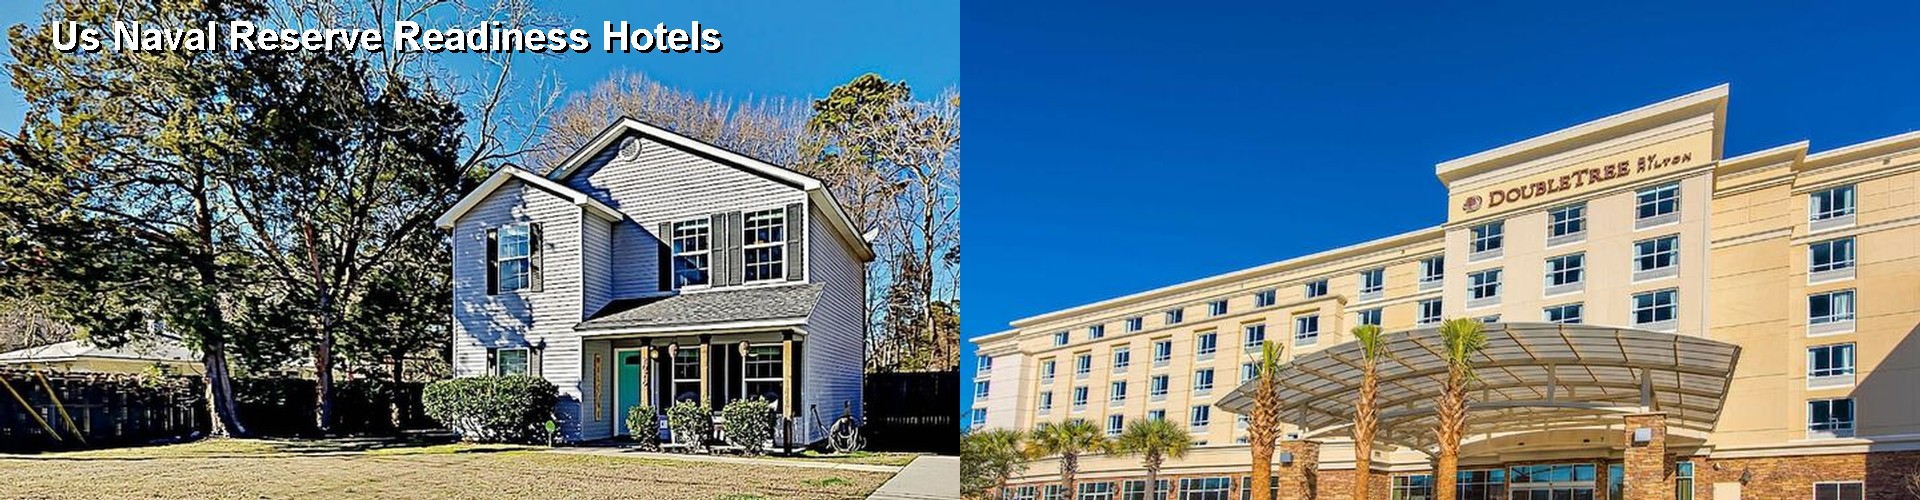 5 Best Hotels near Us Naval Reserve Readiness